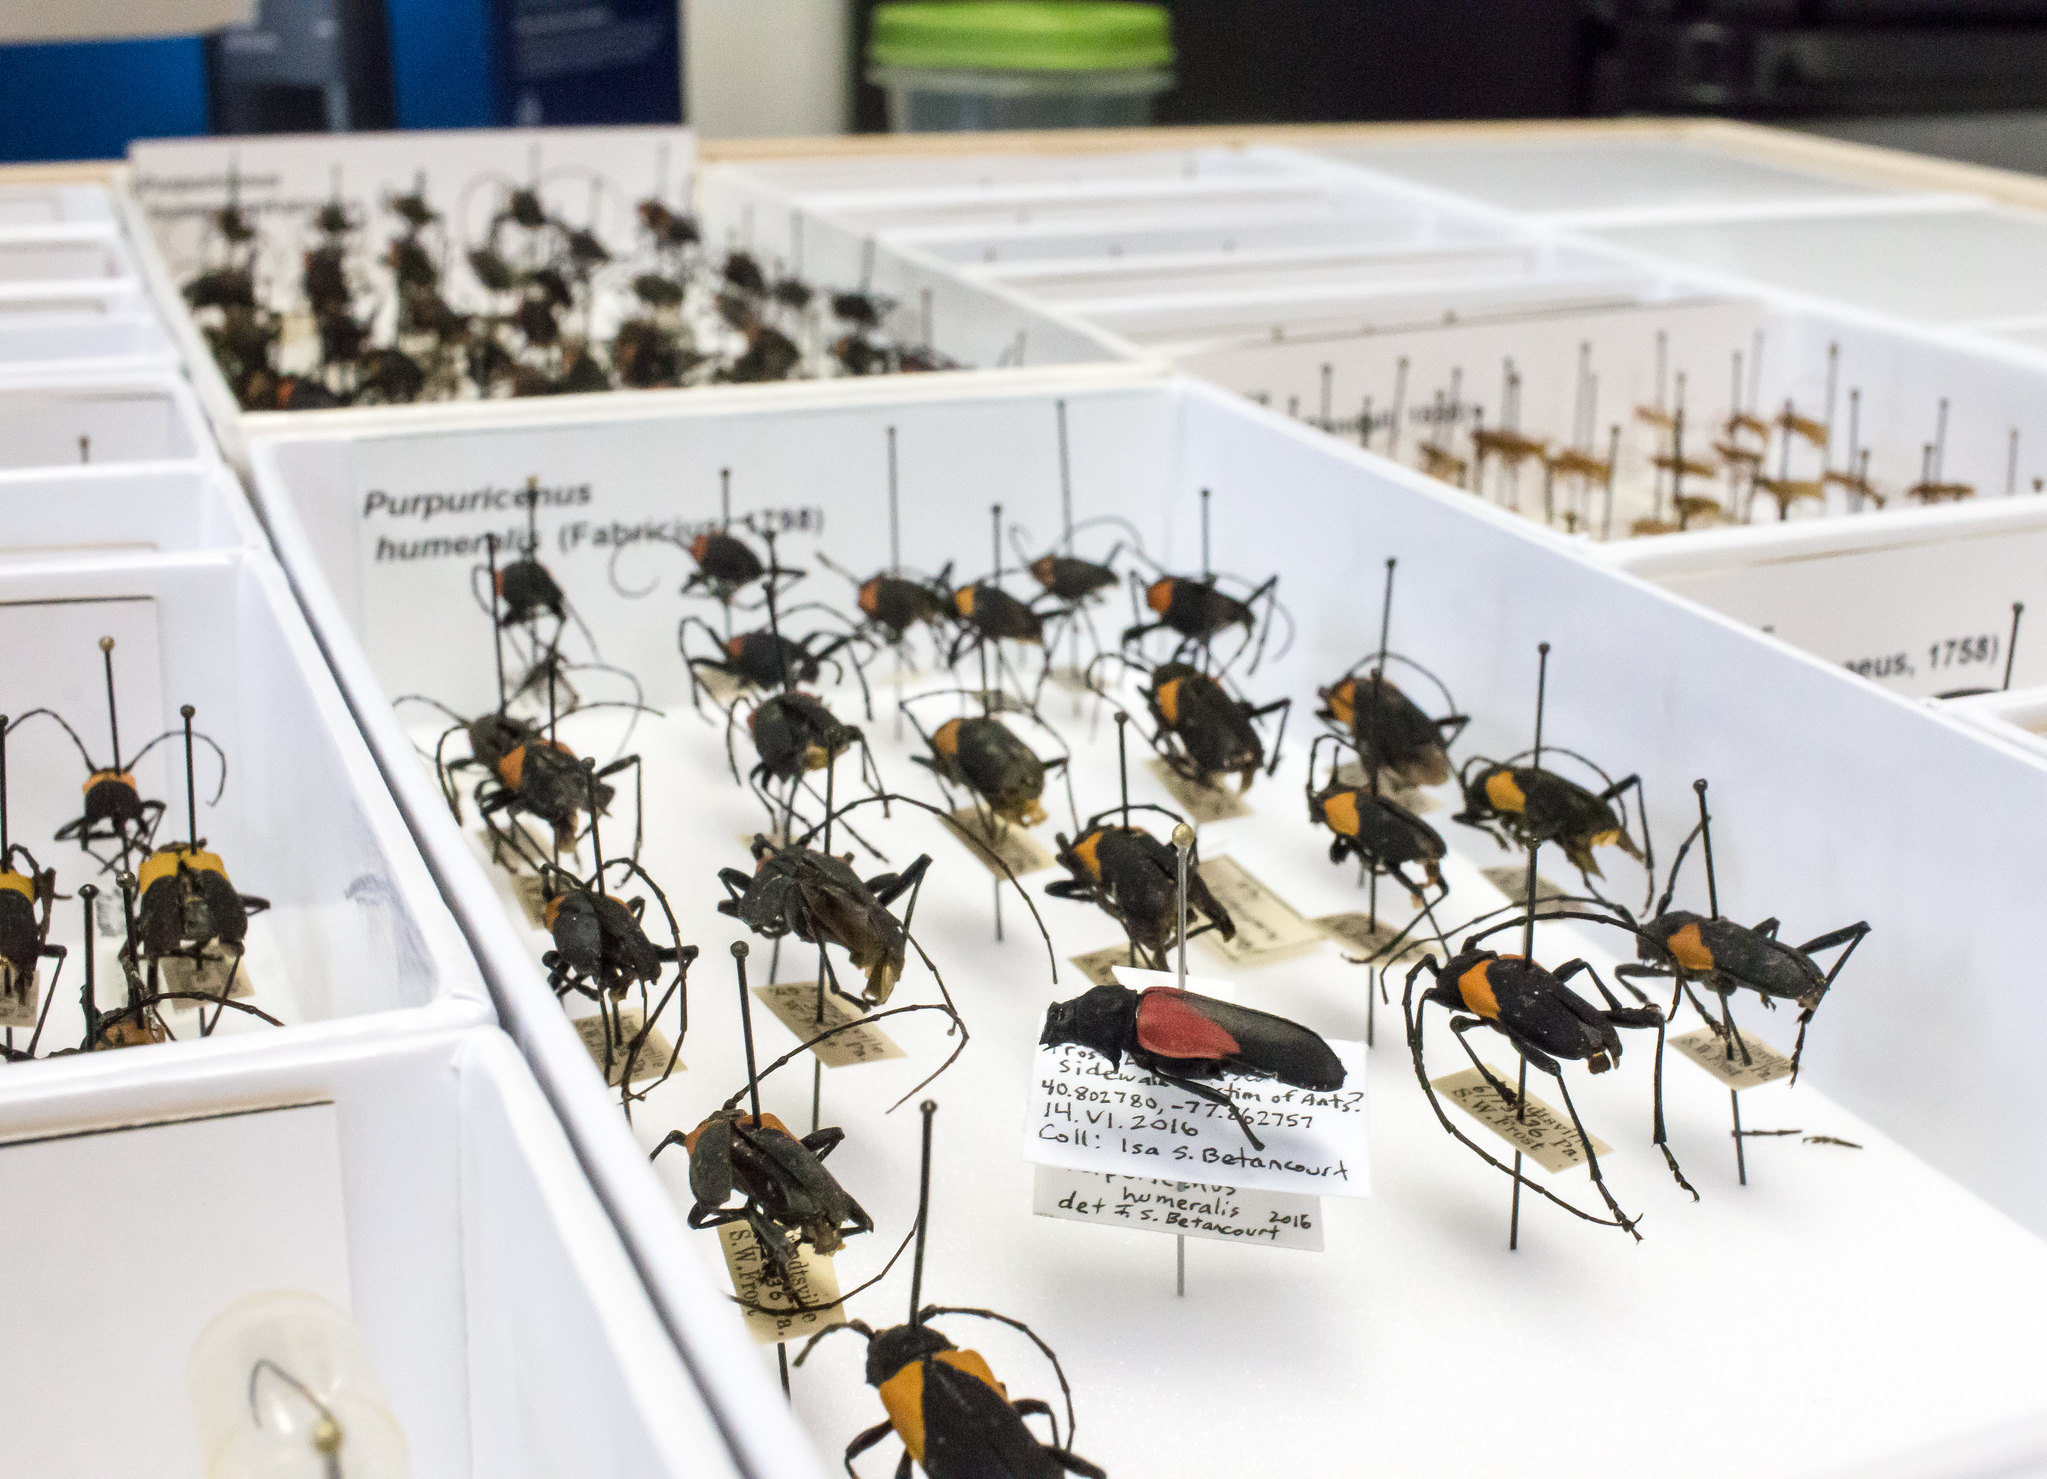 A unit tray of Cerambycidae beetle s of the species Purpuricenus humeralis. A new specimen stands out - the white of the information label stands out among the faded labels of the neighboring beetles.